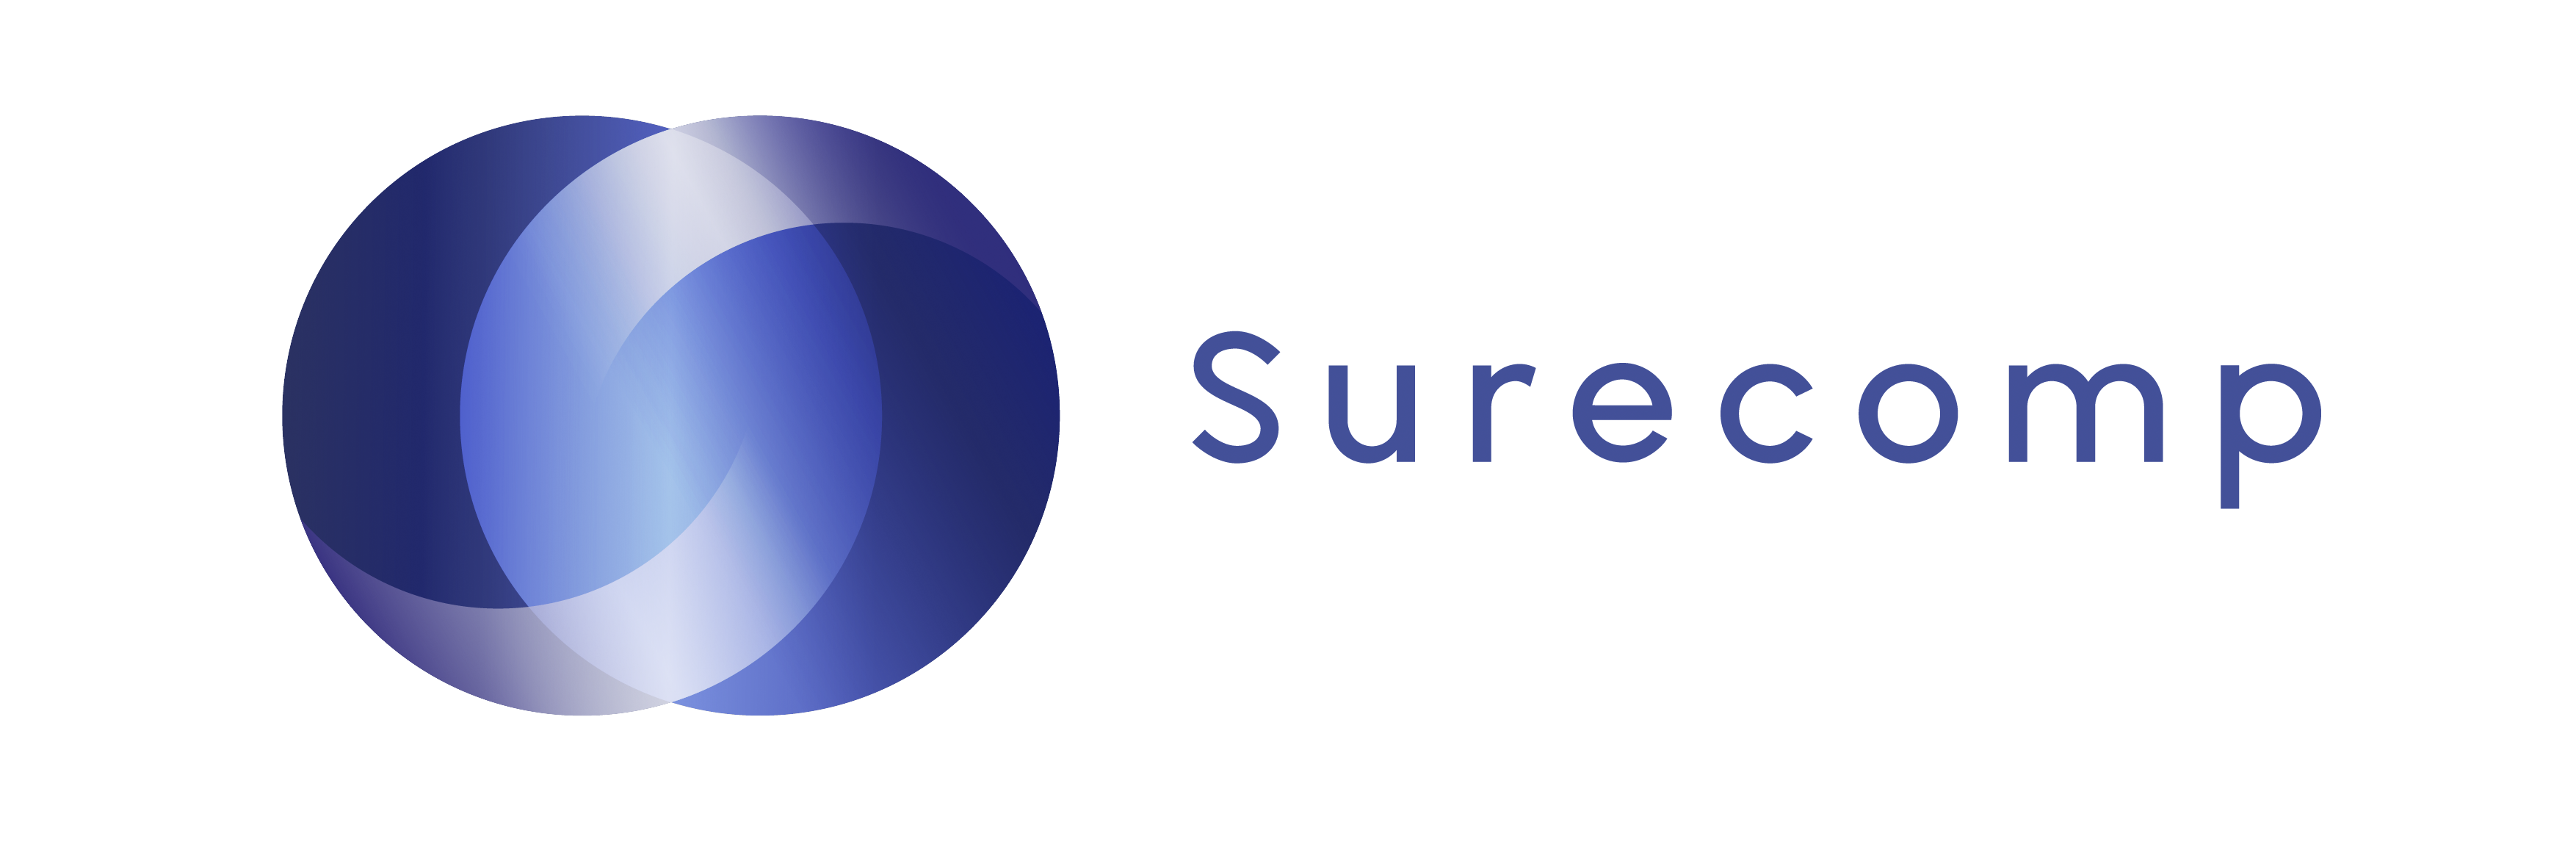 Surecomp COR-TF Corporate Trade Finance Solution Awarded 2015 SWIFT Certified Application Label